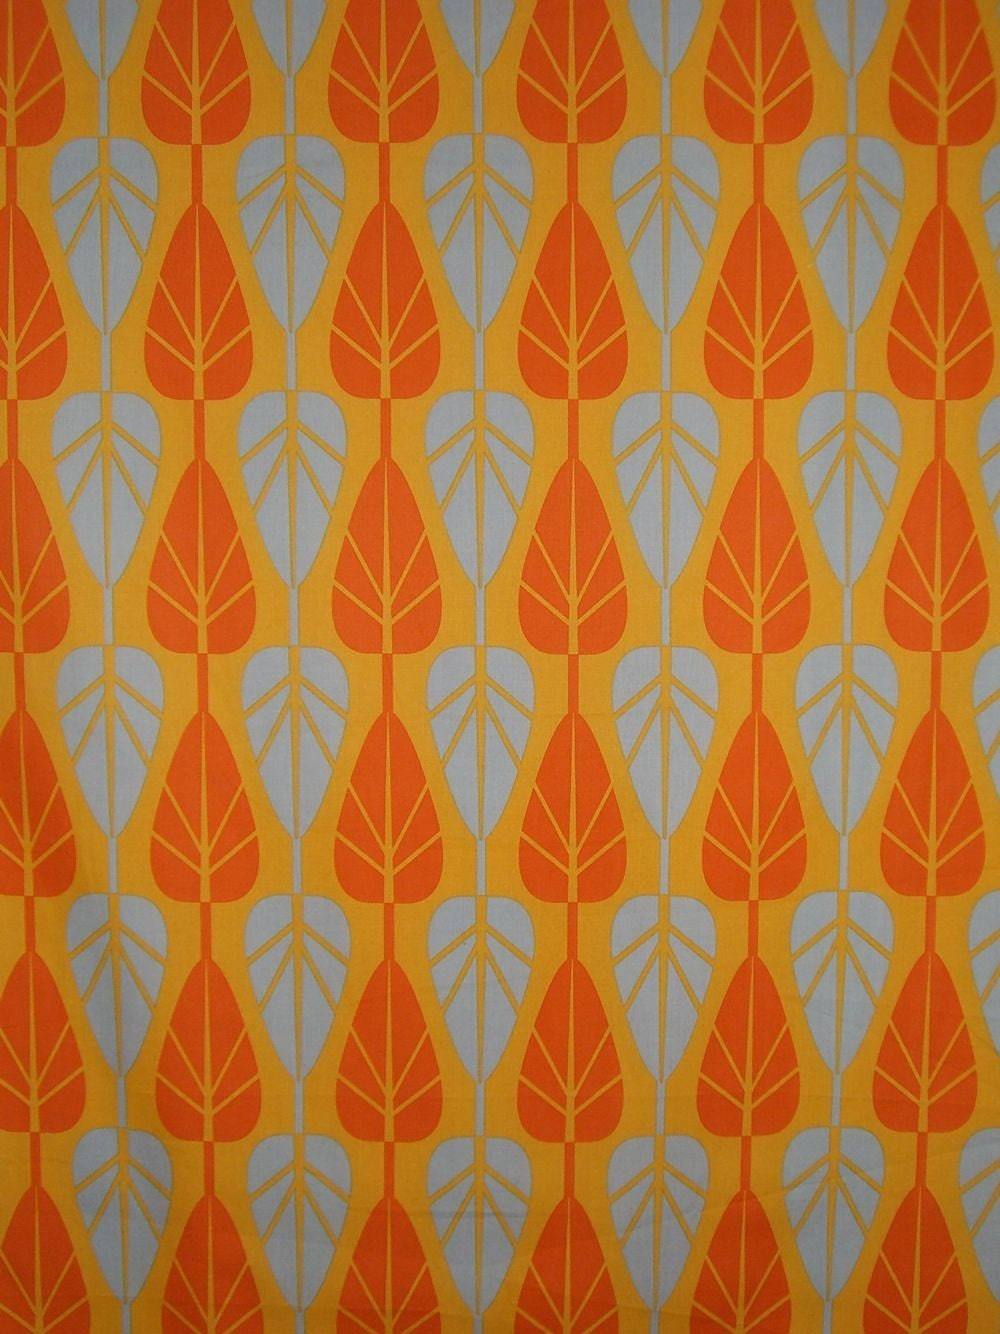 Remnantleaf Pattern Modern Cotton Print Fabric In Orange And